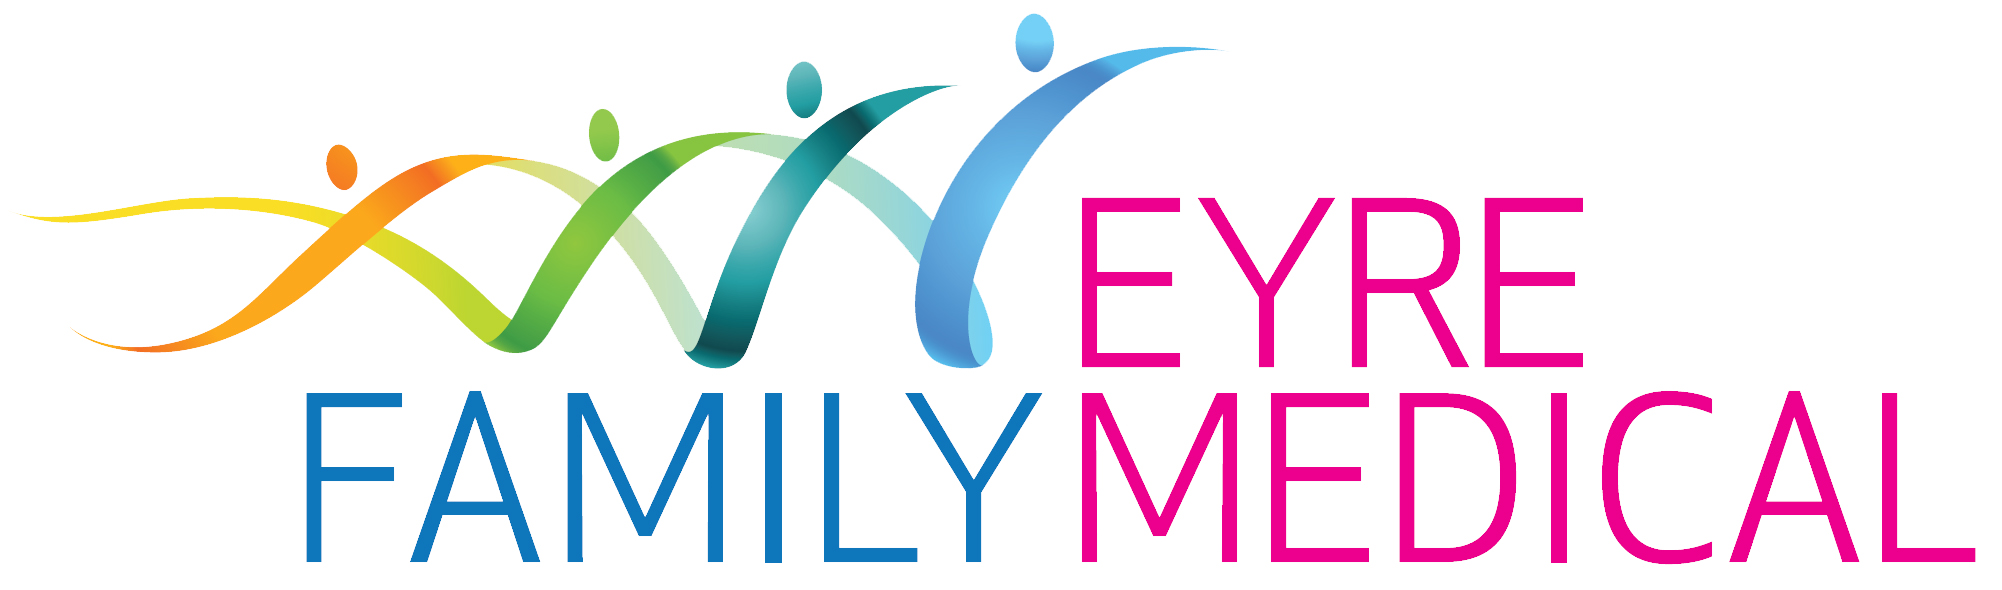 Eyre Family Medical